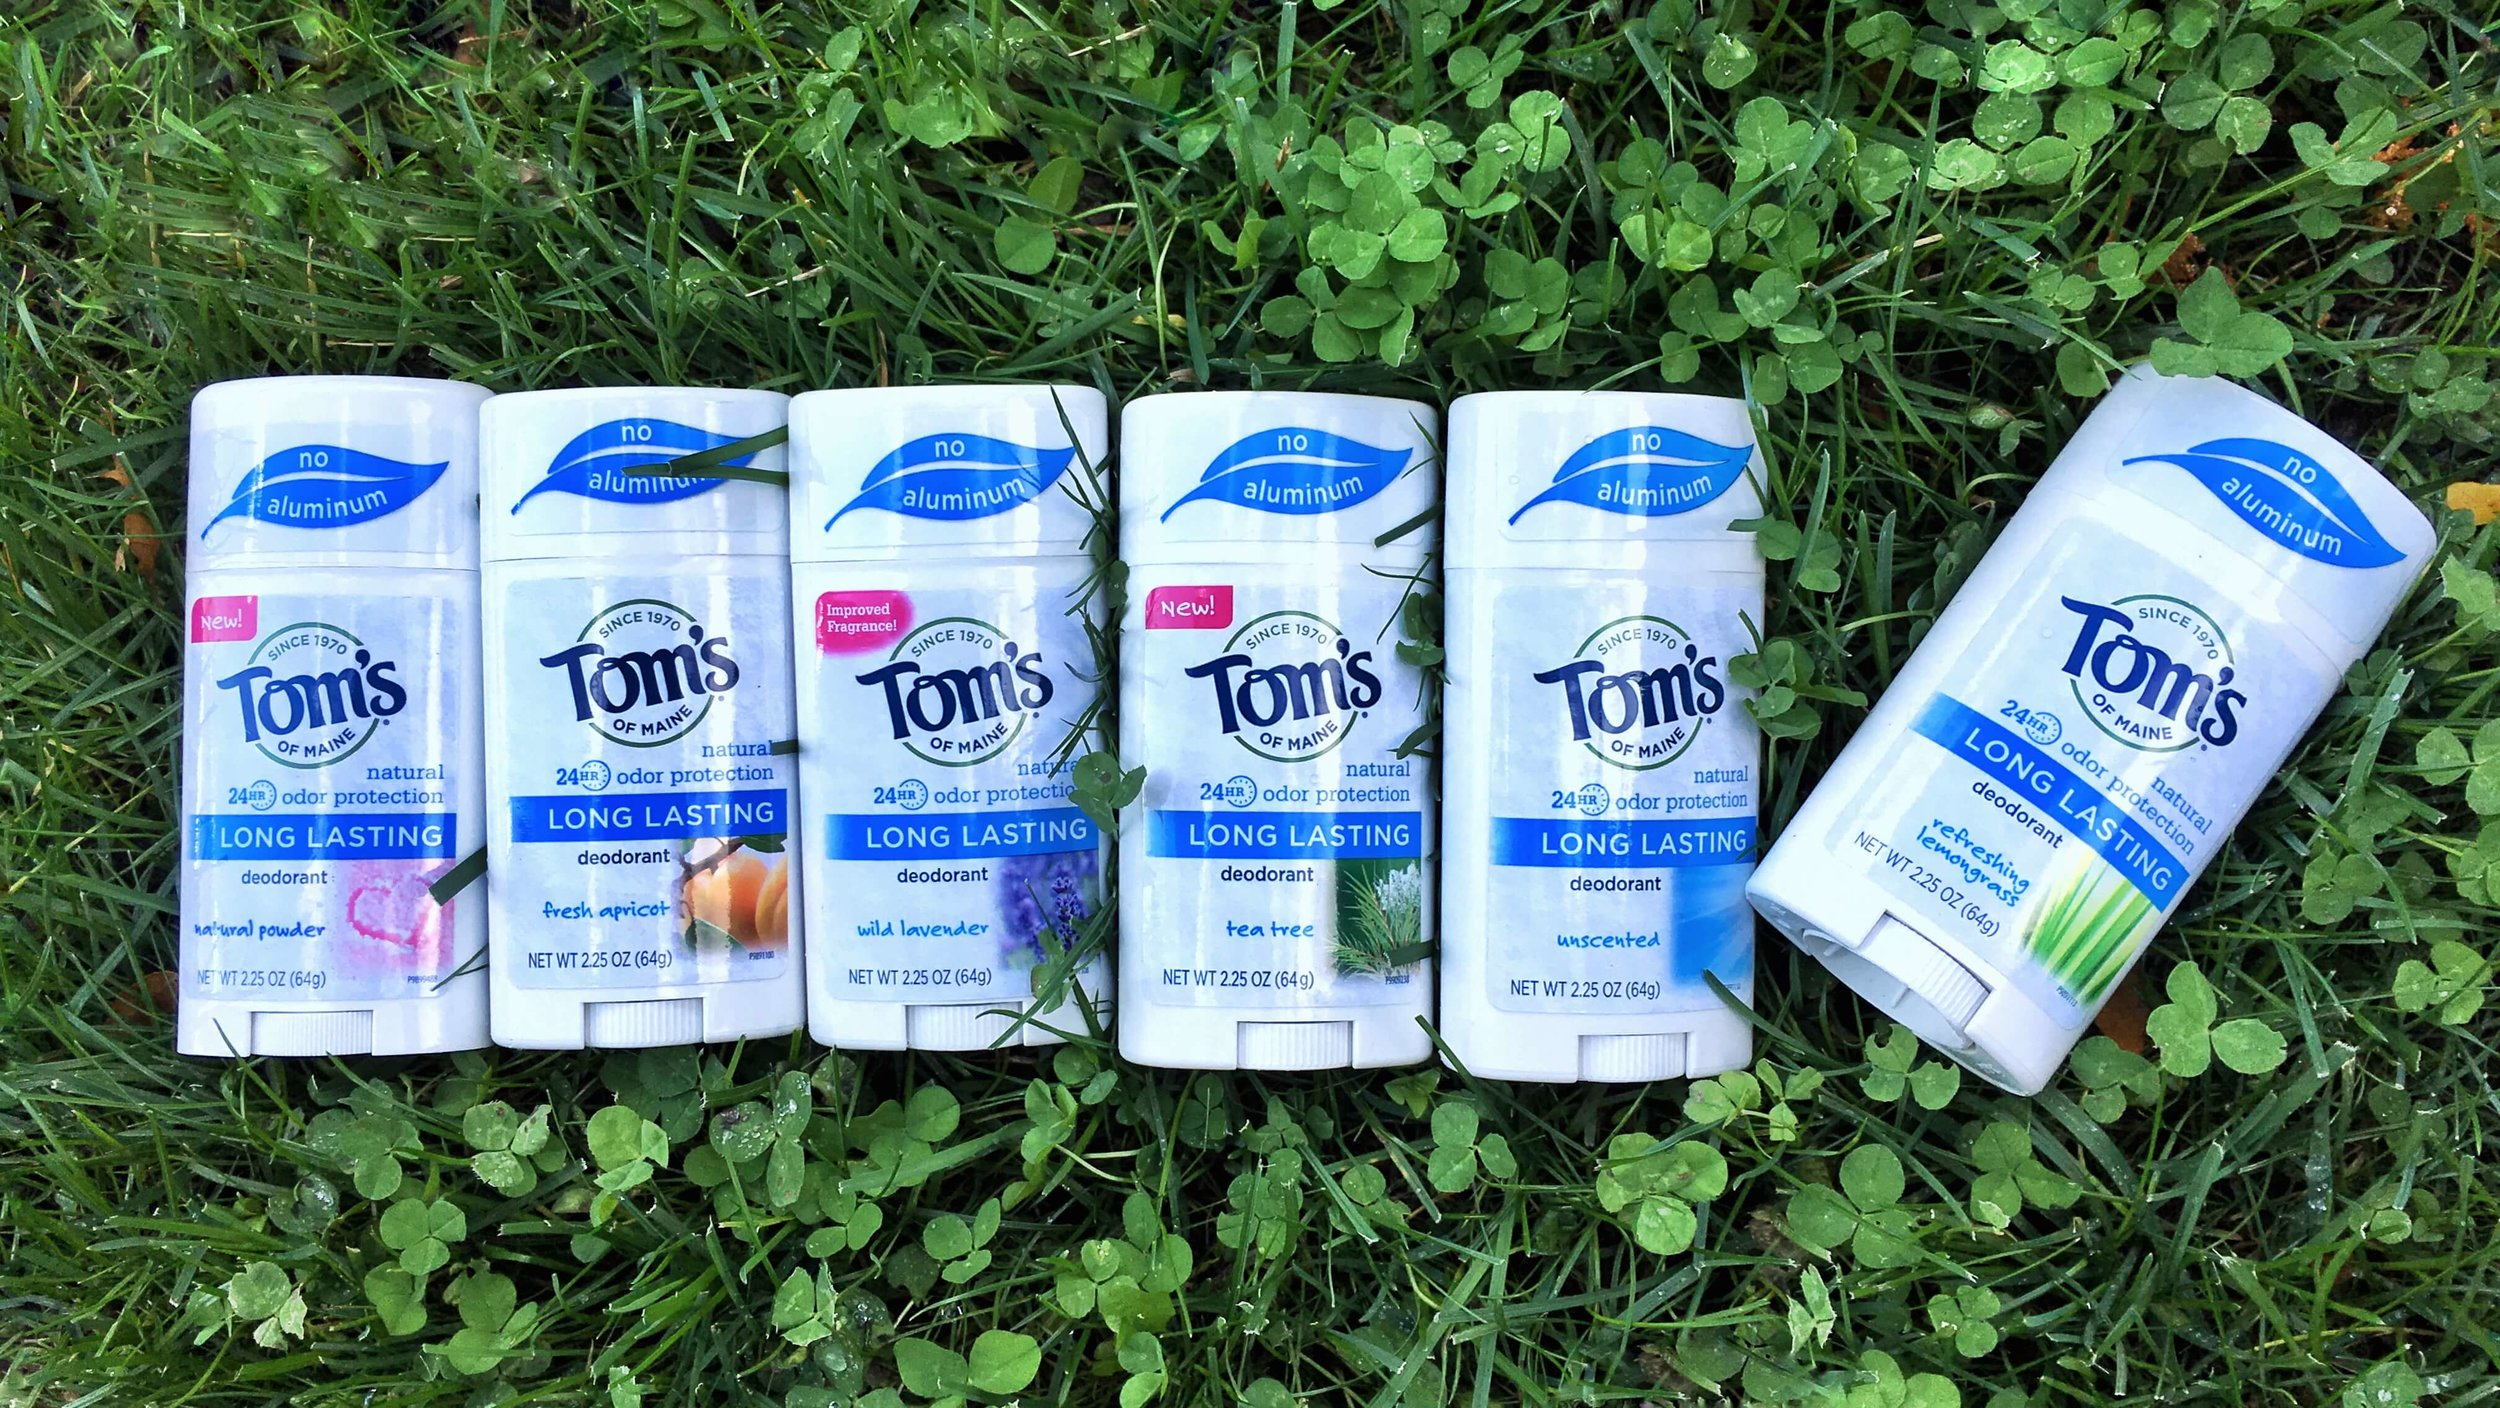 toms-of-maine-giveaway